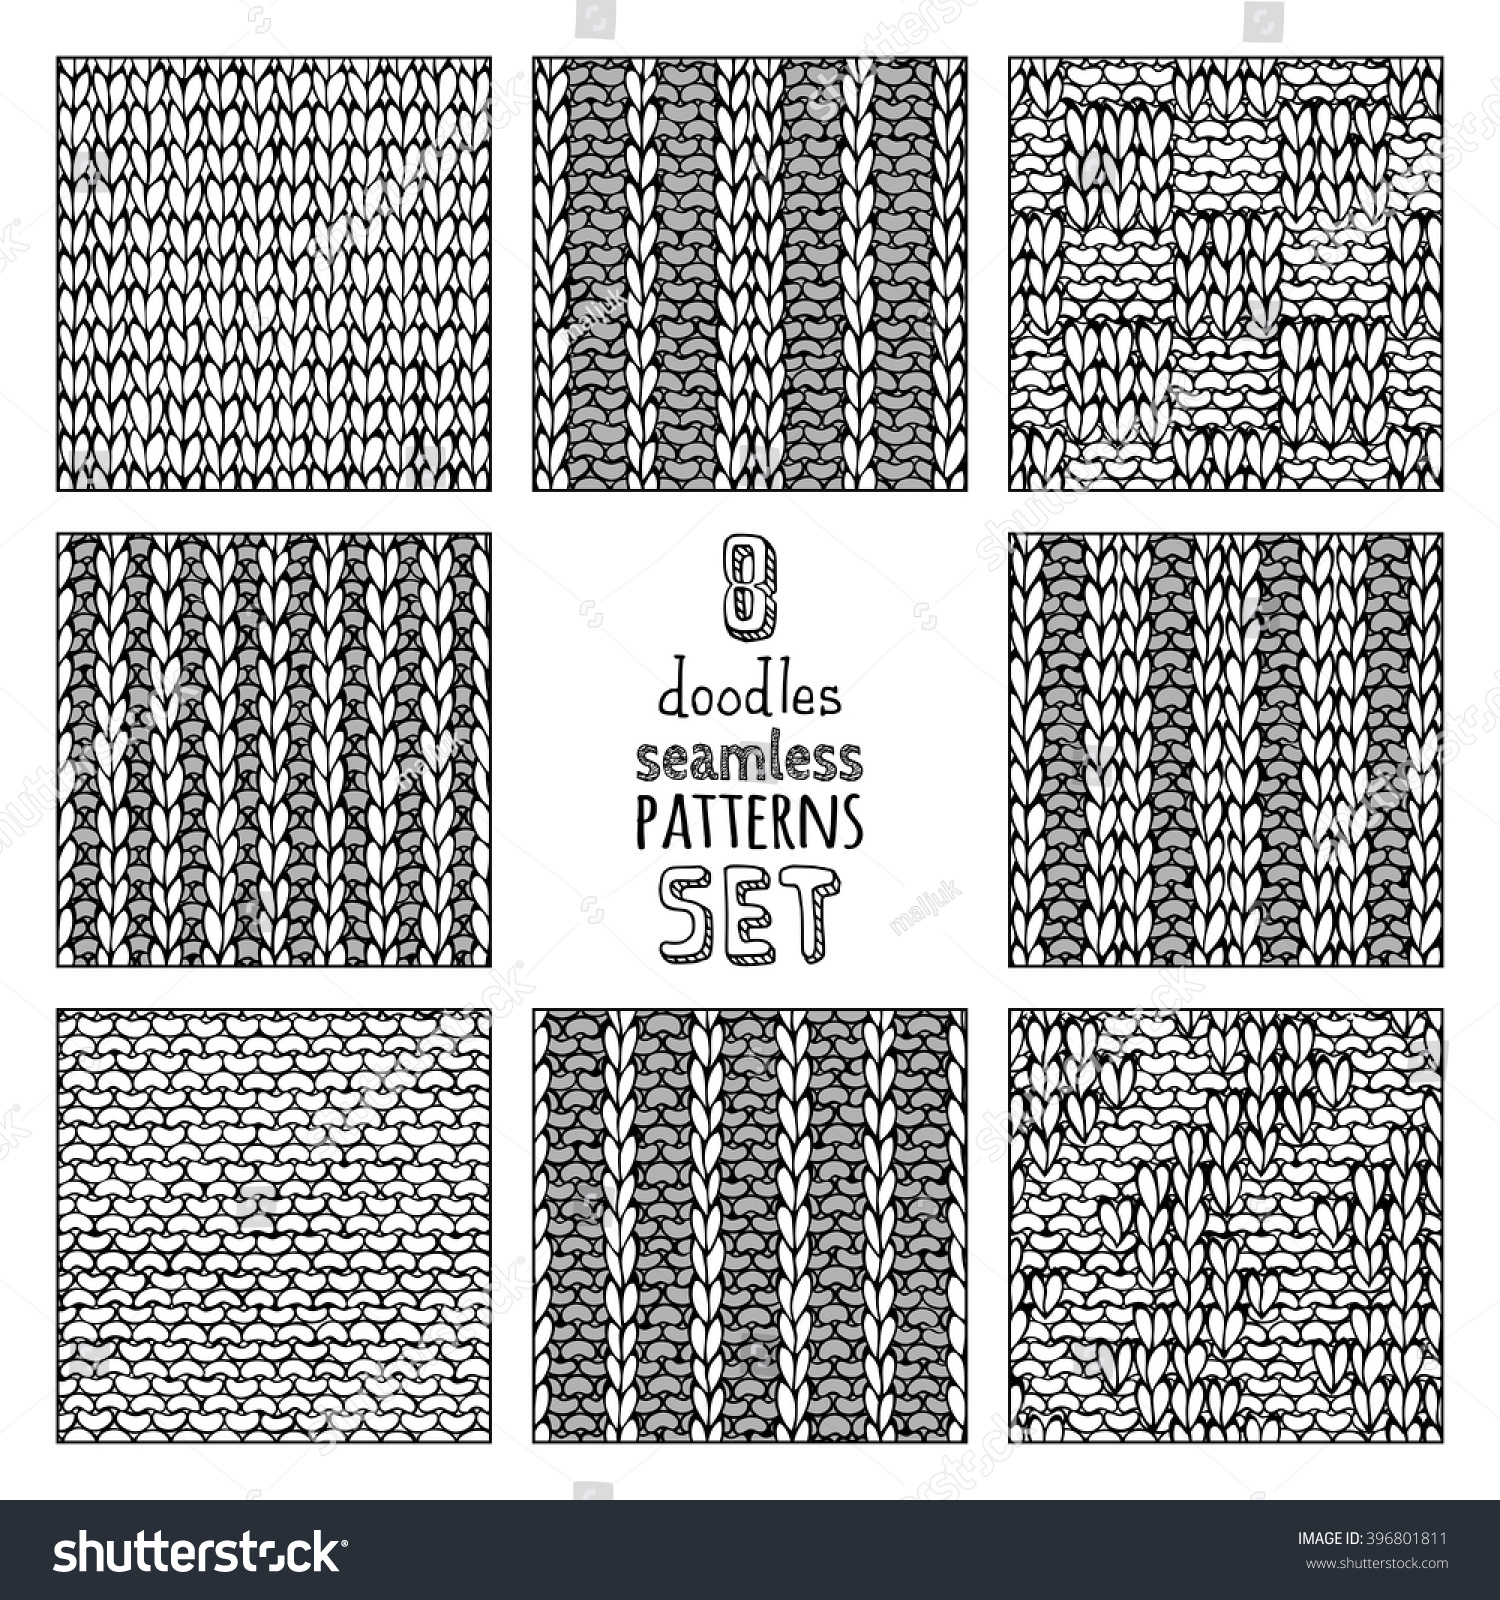 Knitting Vector Patterns : Vector set various doodles stitch patterns 스톡 벡터